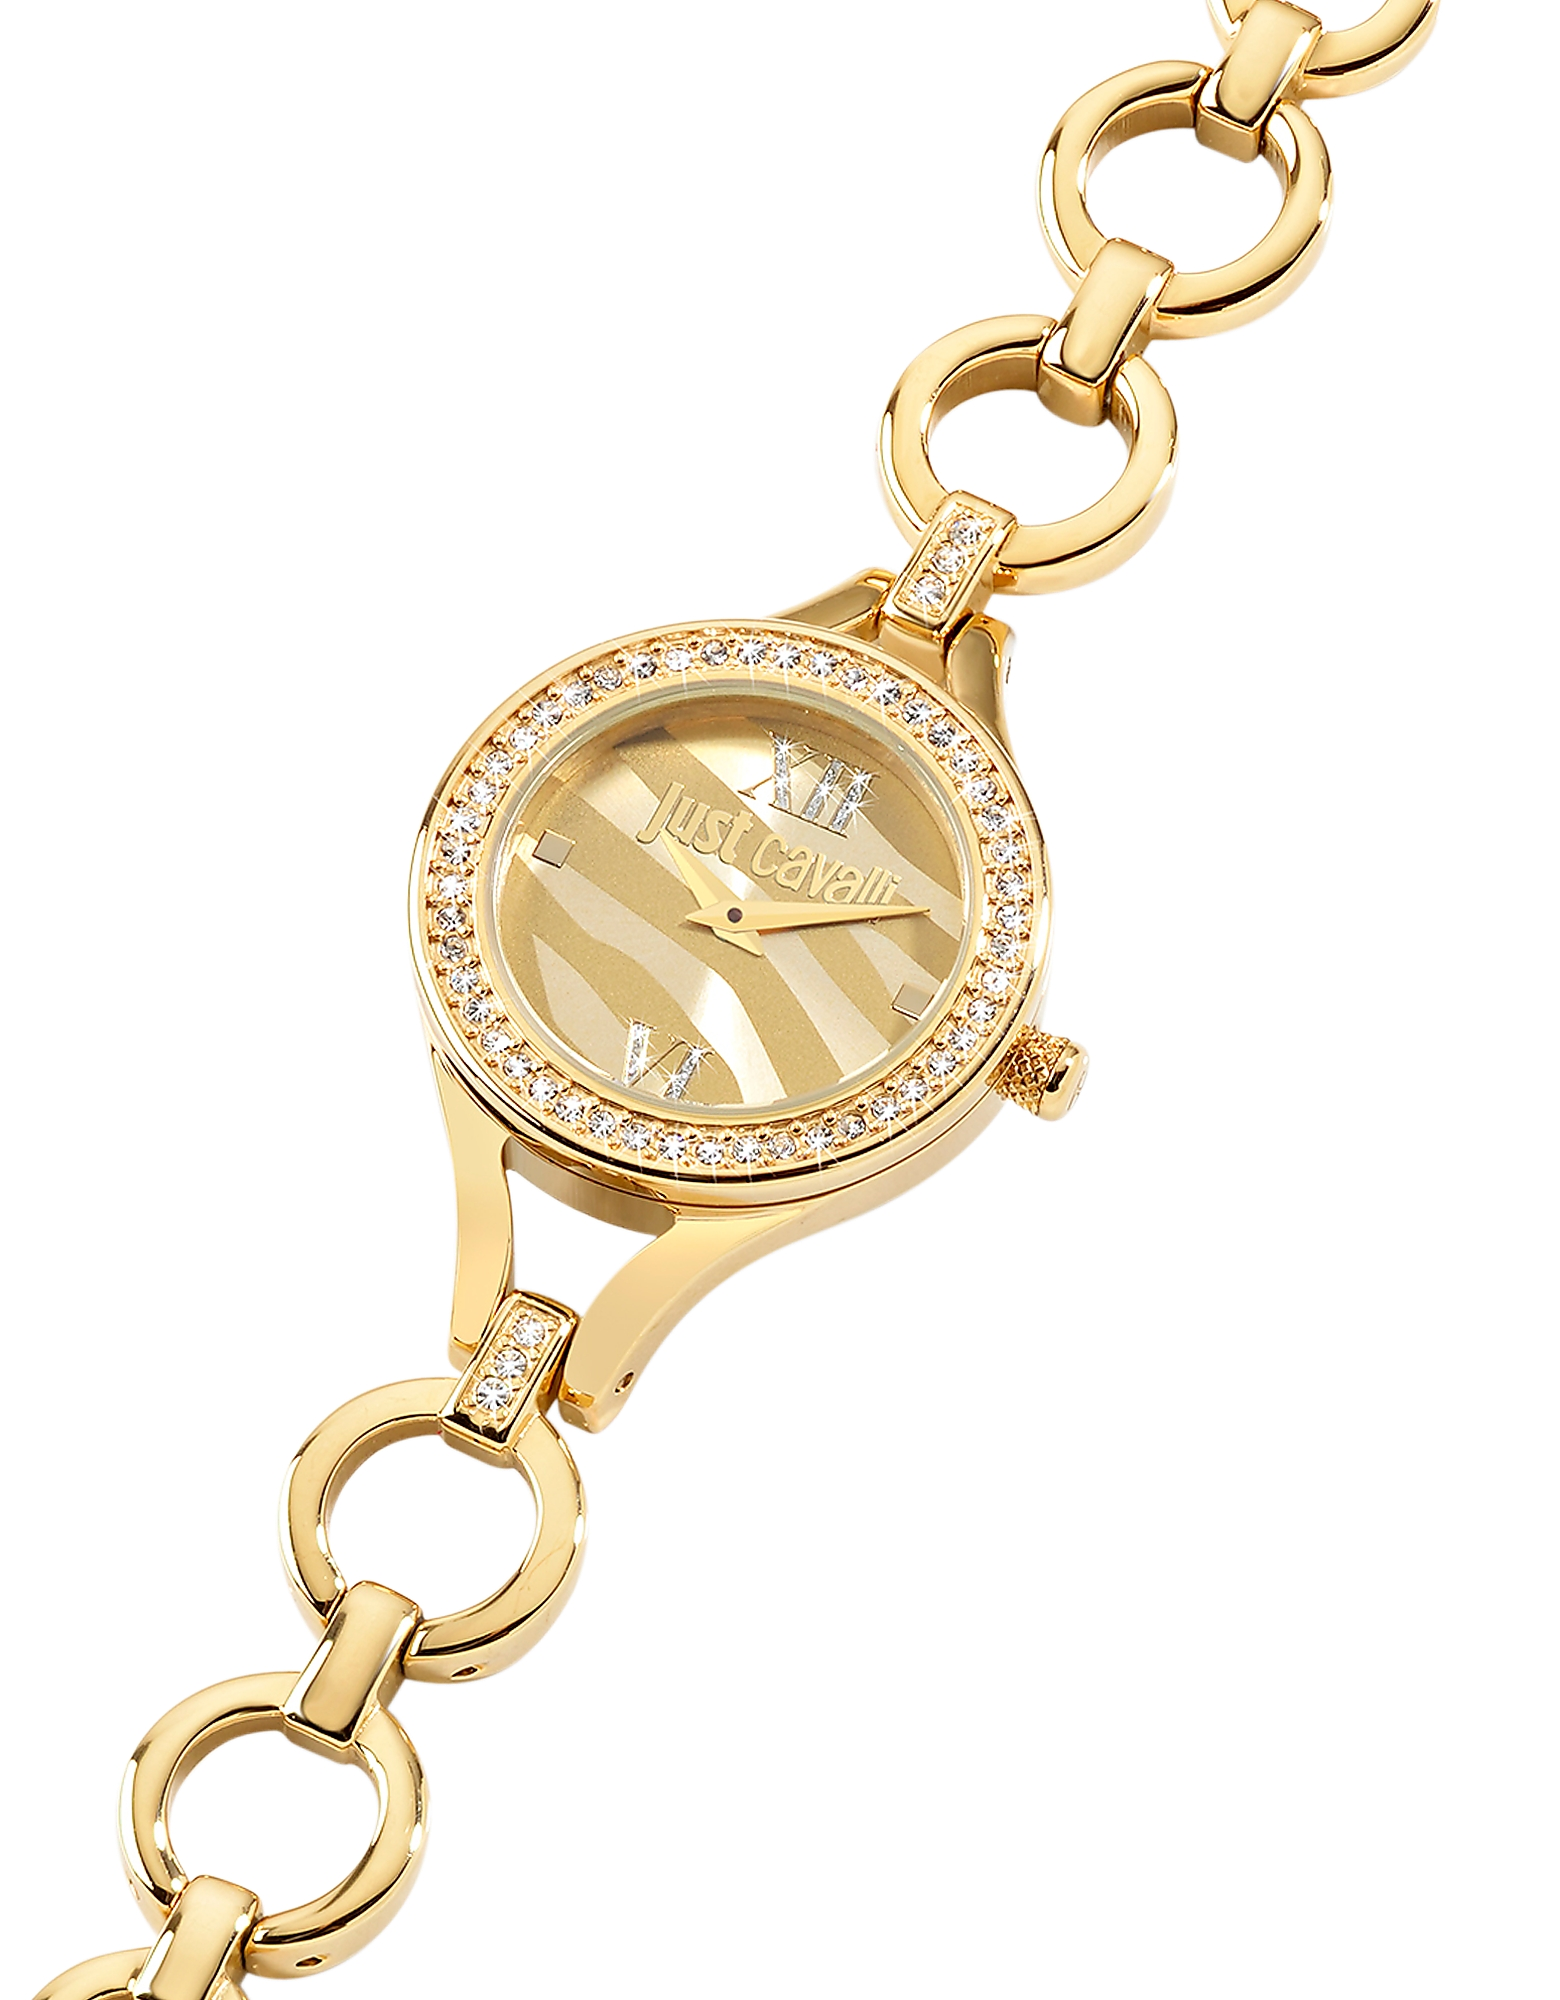 Just Cavalli Women's Watches, Solo JC Golden Stainless Steel Women's Watch